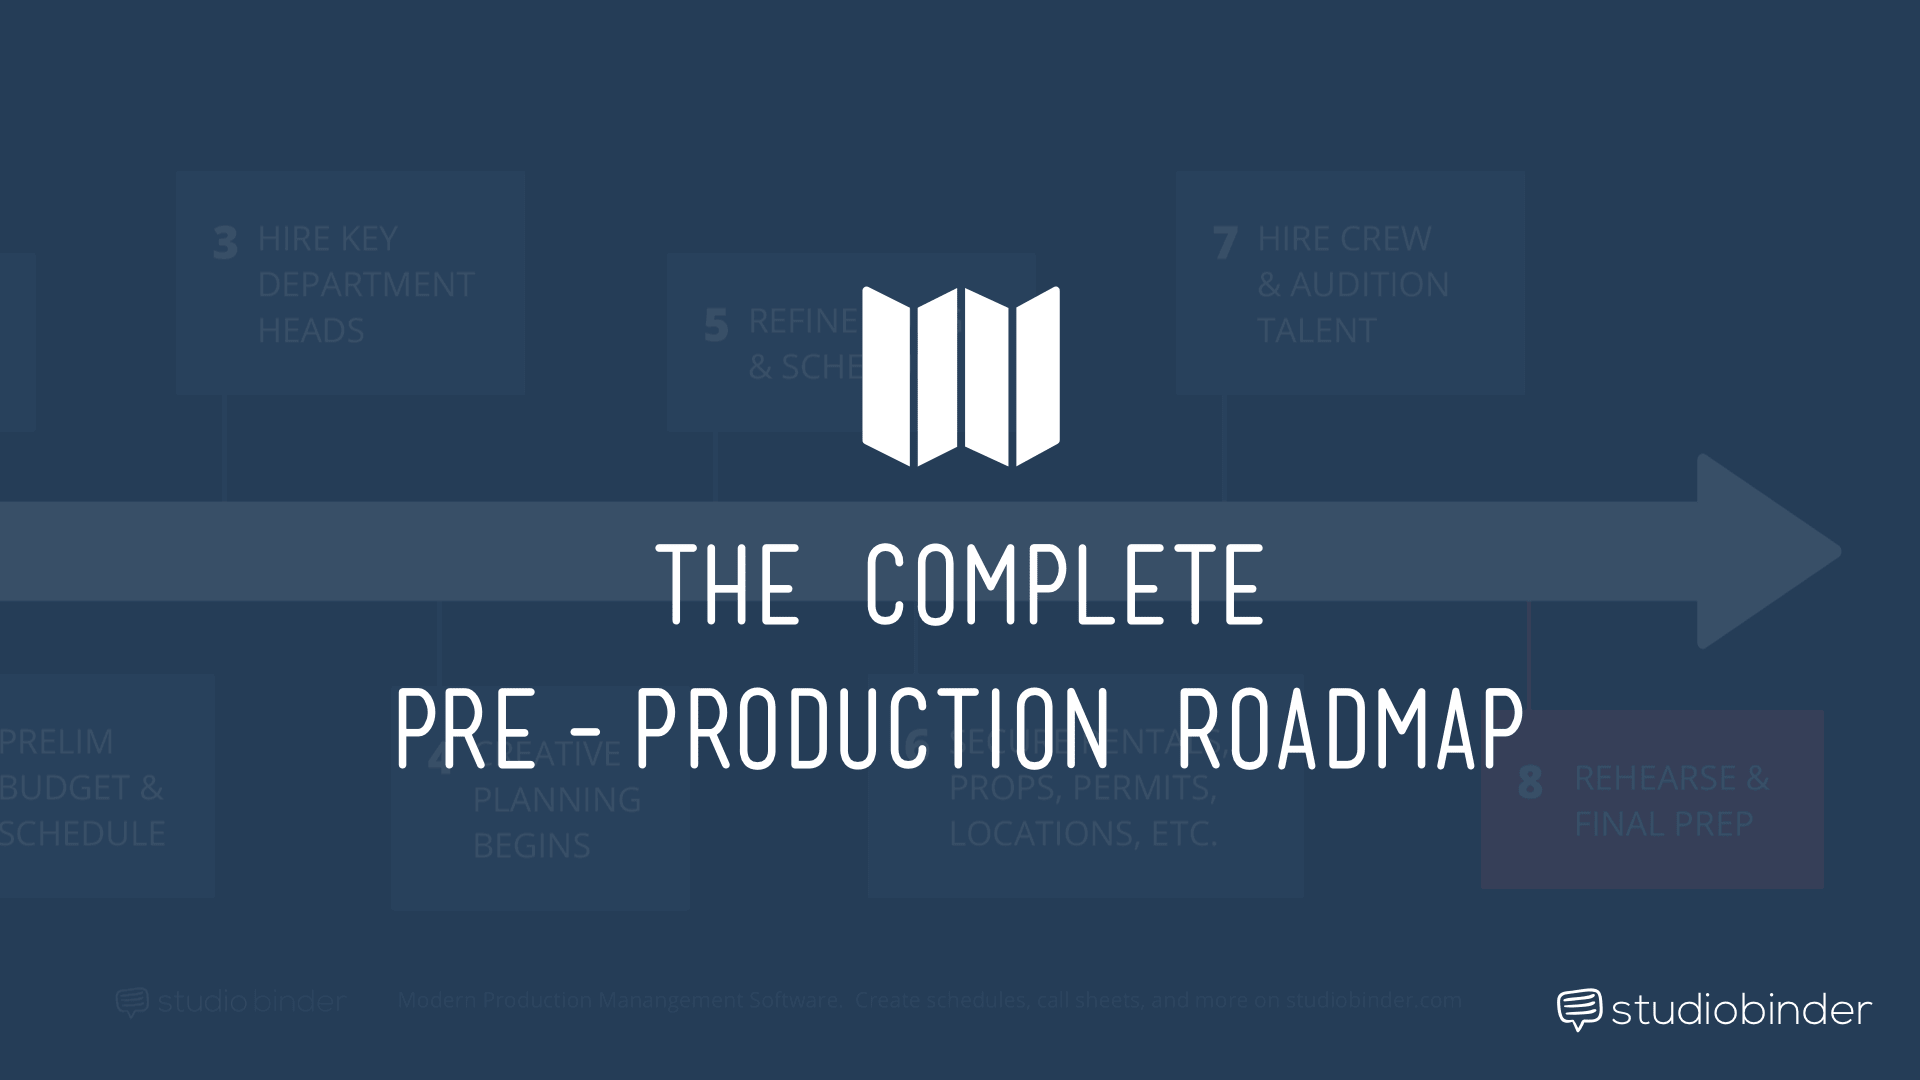 The Complete Film Pre Production Checklist Roadmap - StudioBinder